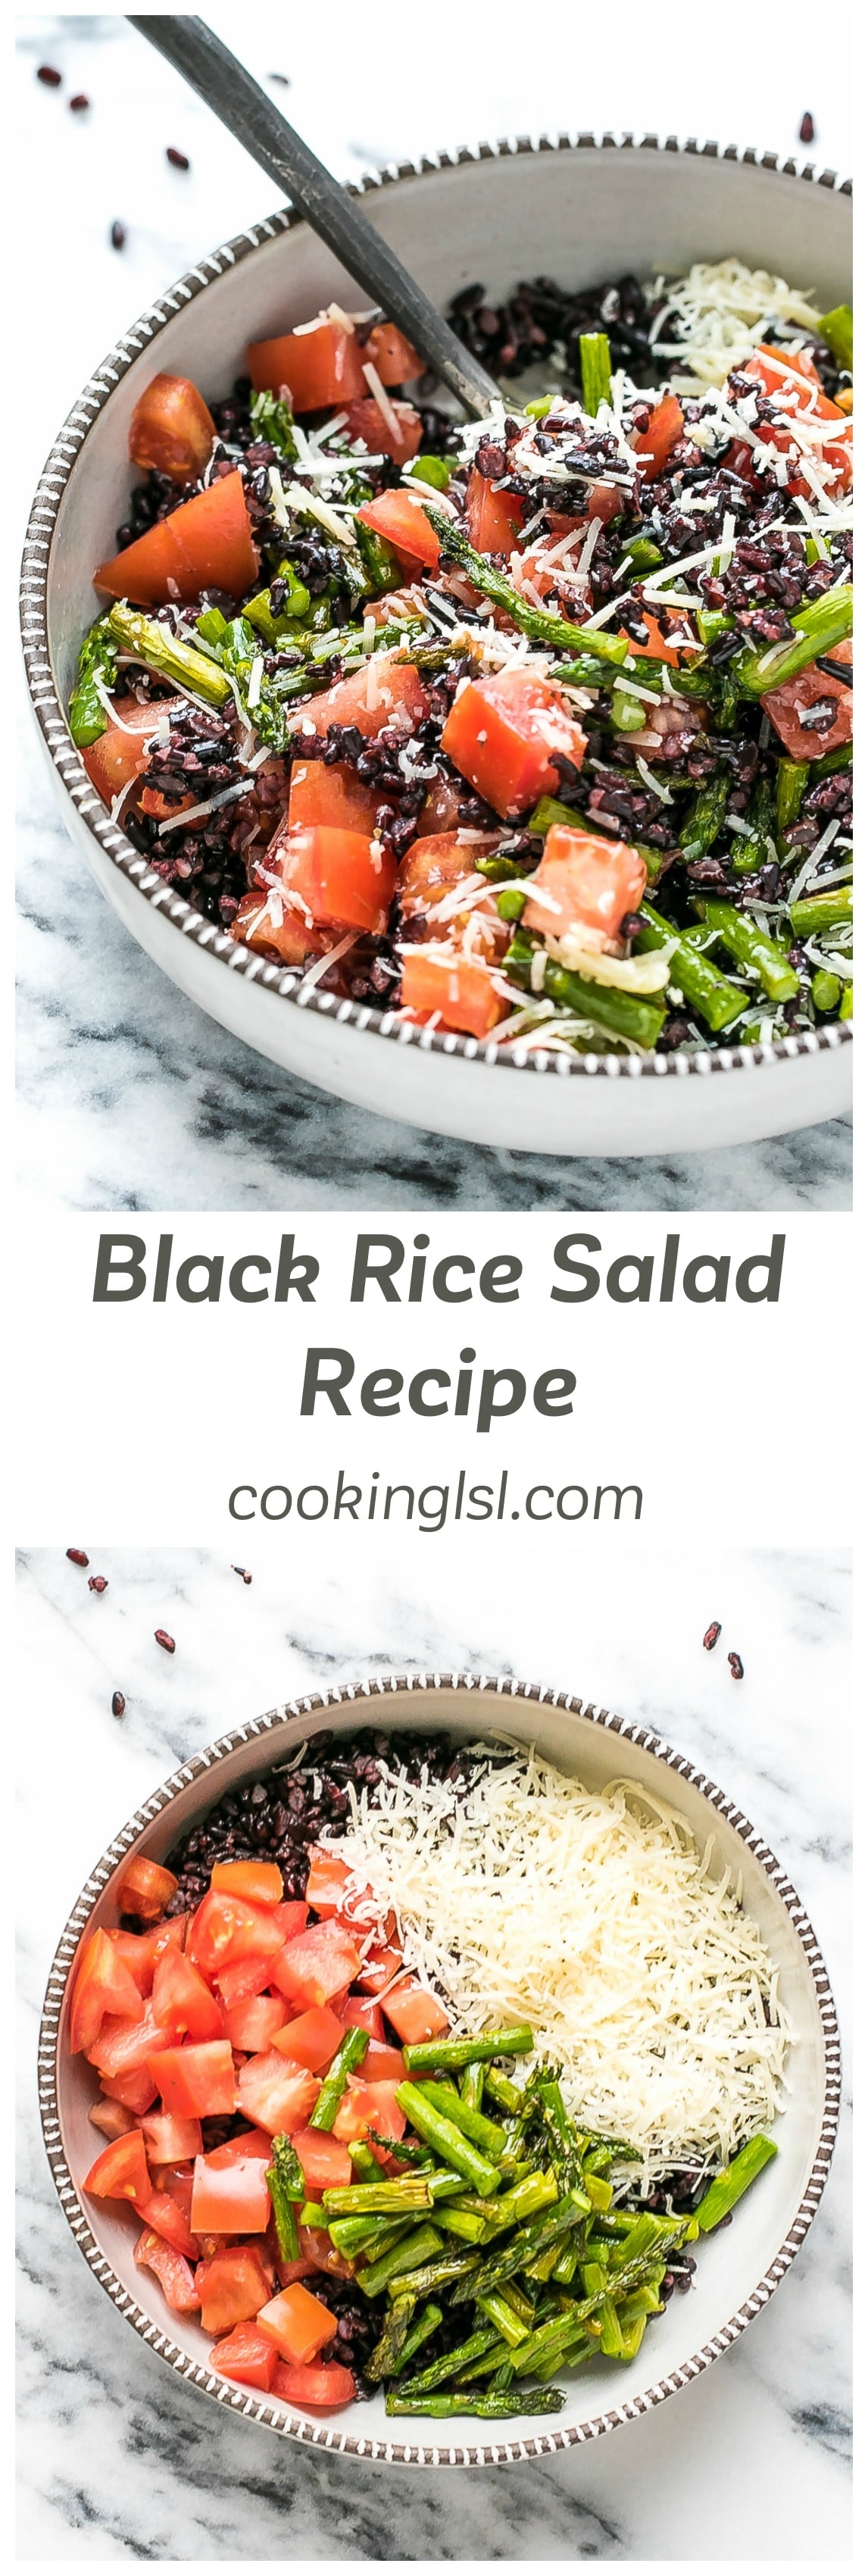 Black Rice Salad Recipe - a different kind of salad, made with black rice, asparagus, tomatoes and Parmesan cheese. Easy to make, tasty and nutritious.